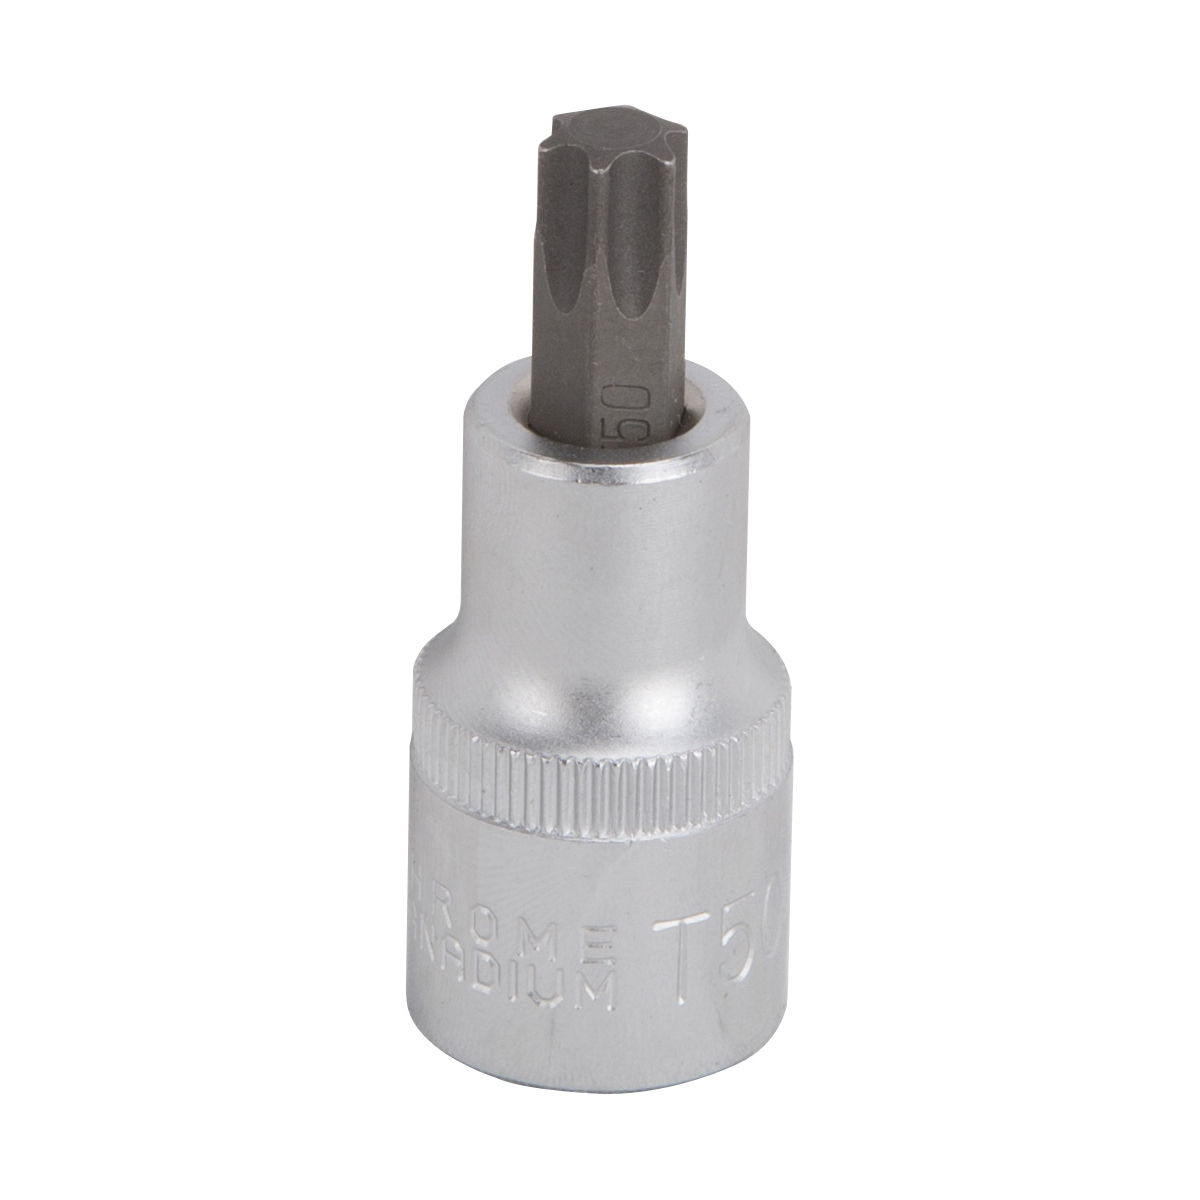 Picture of Vulcan 3505012414 Fractional Star Bit Socket, T50 Tip, 1/2 in Drive